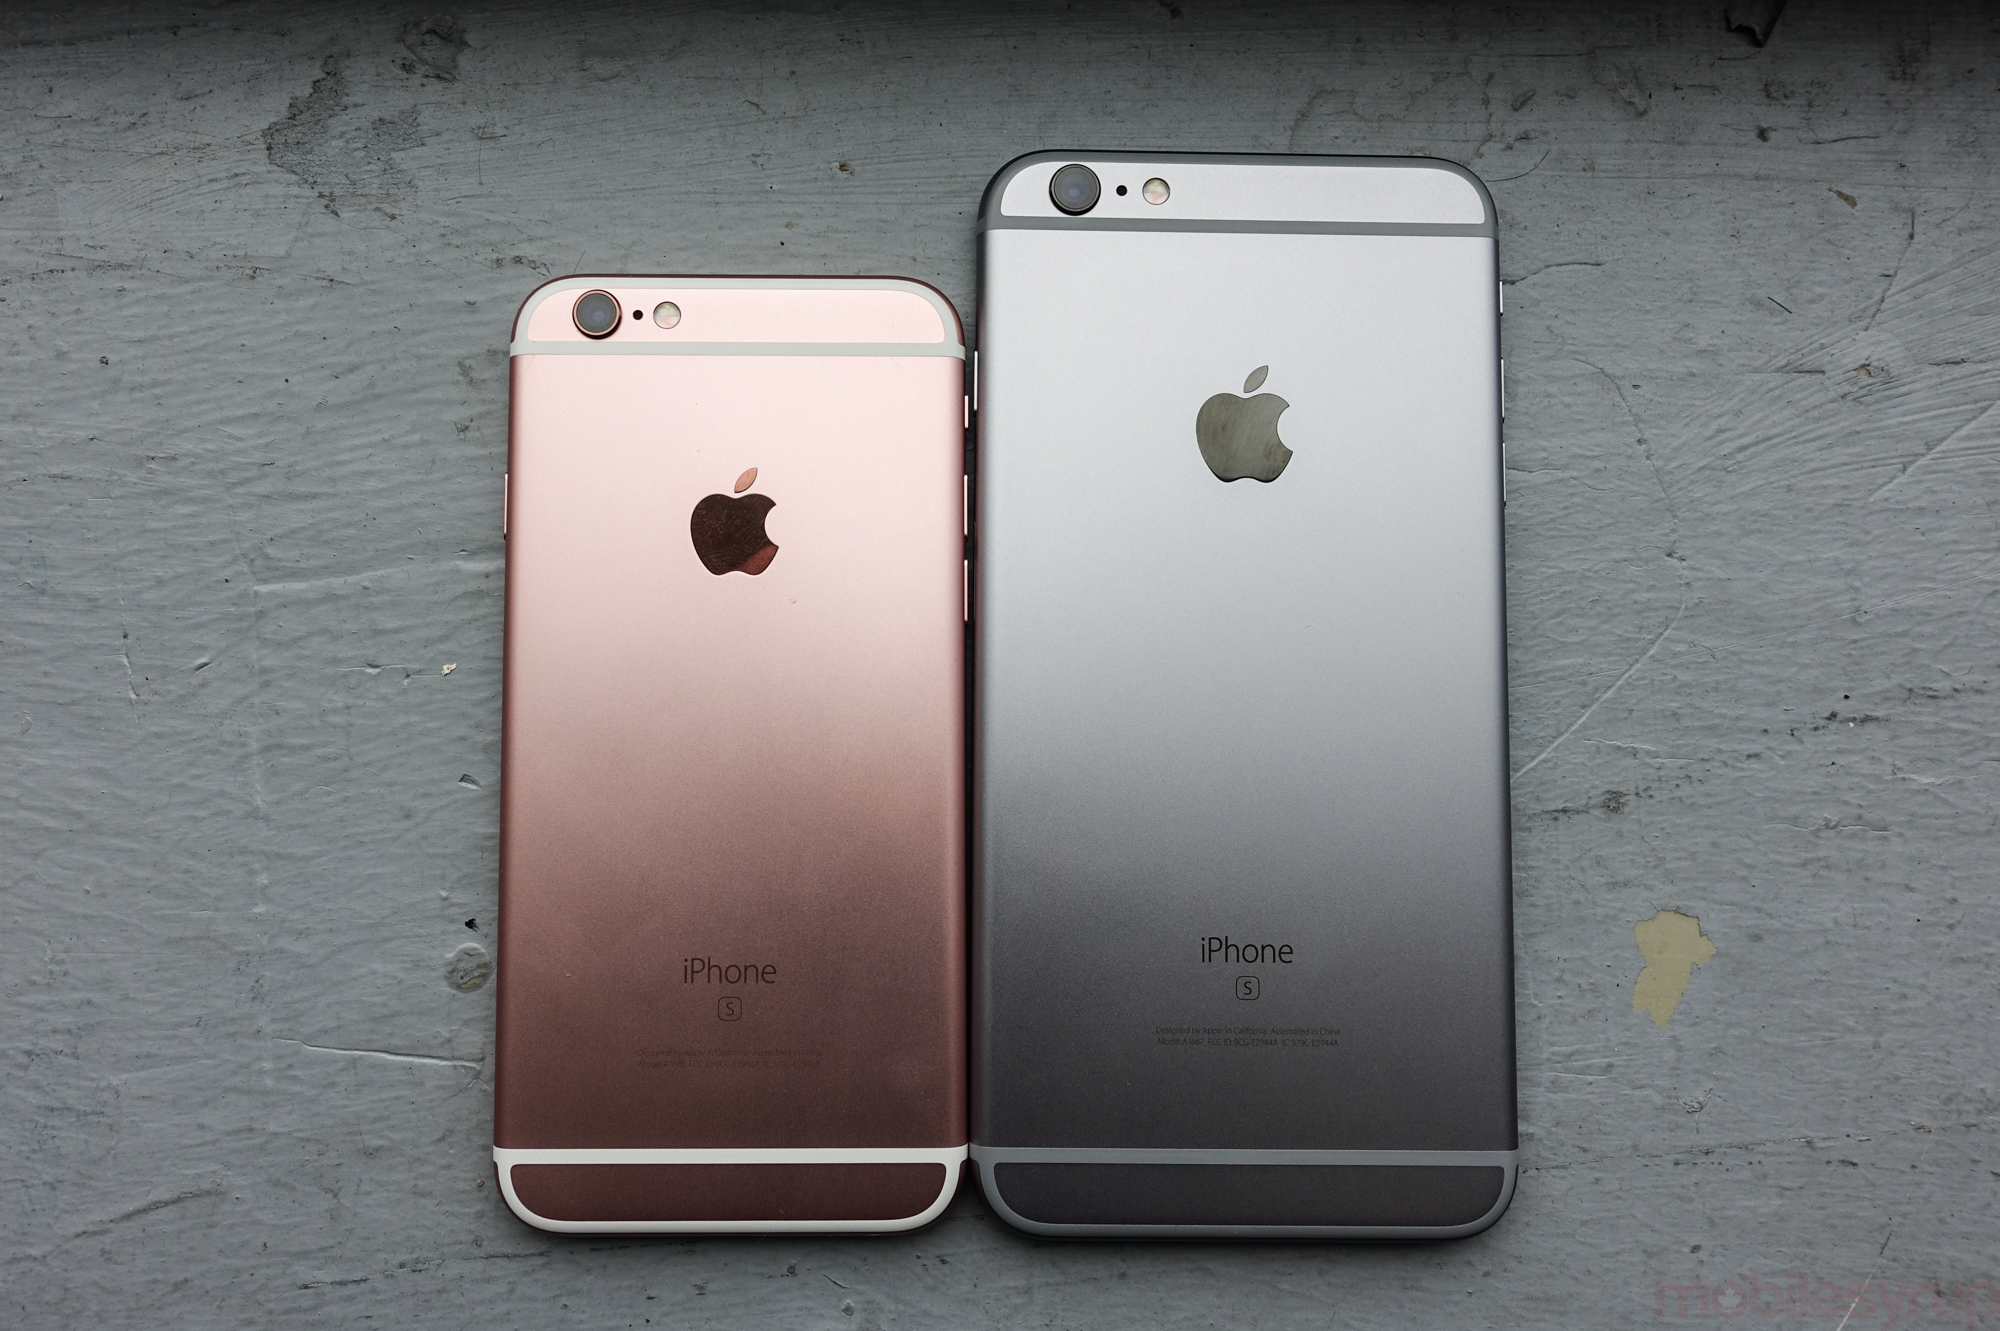 iphone6sreview-01299